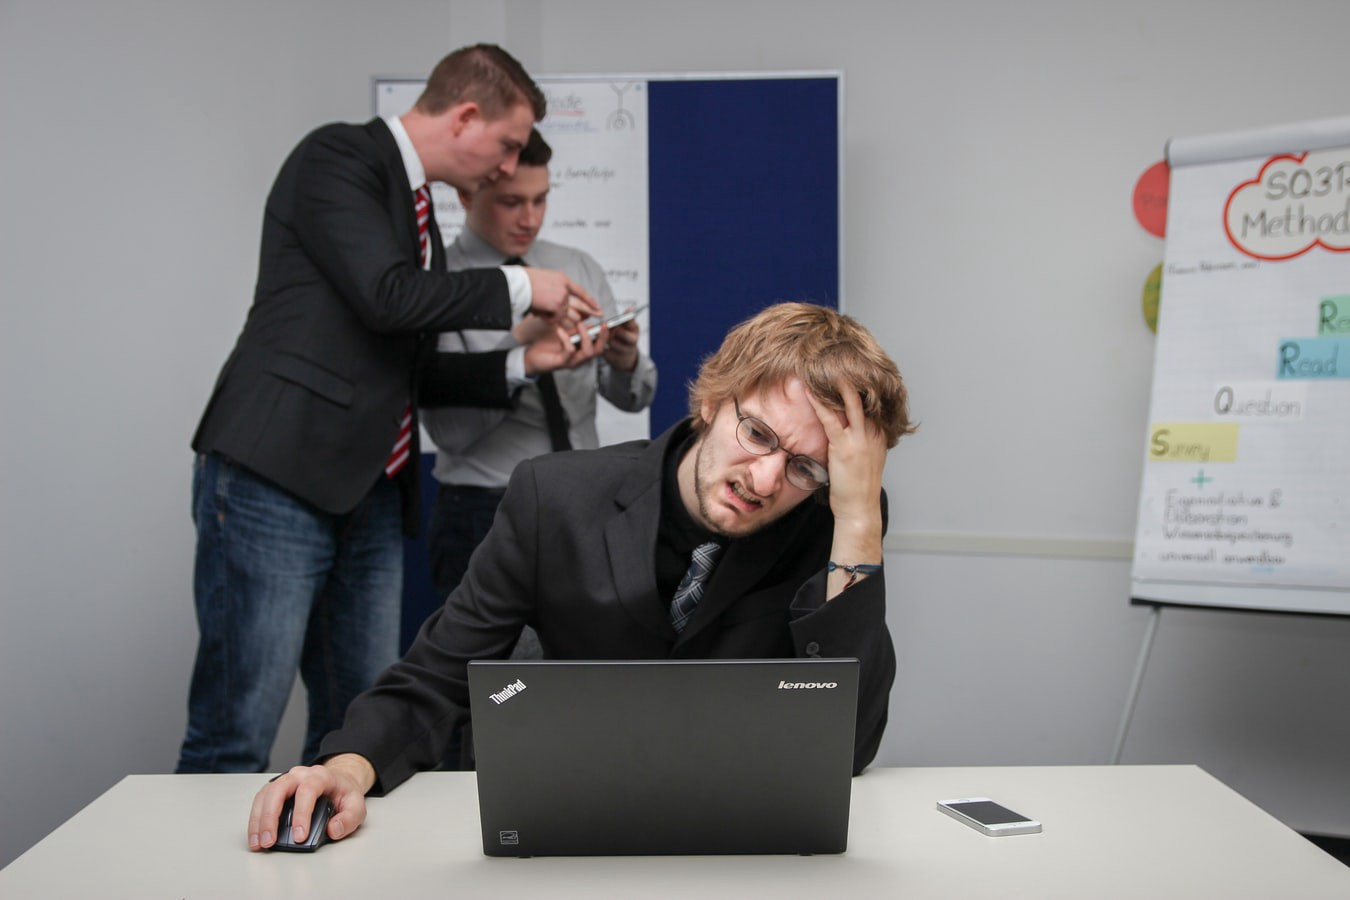 team member who is looking at the computer and is stressing over tasks